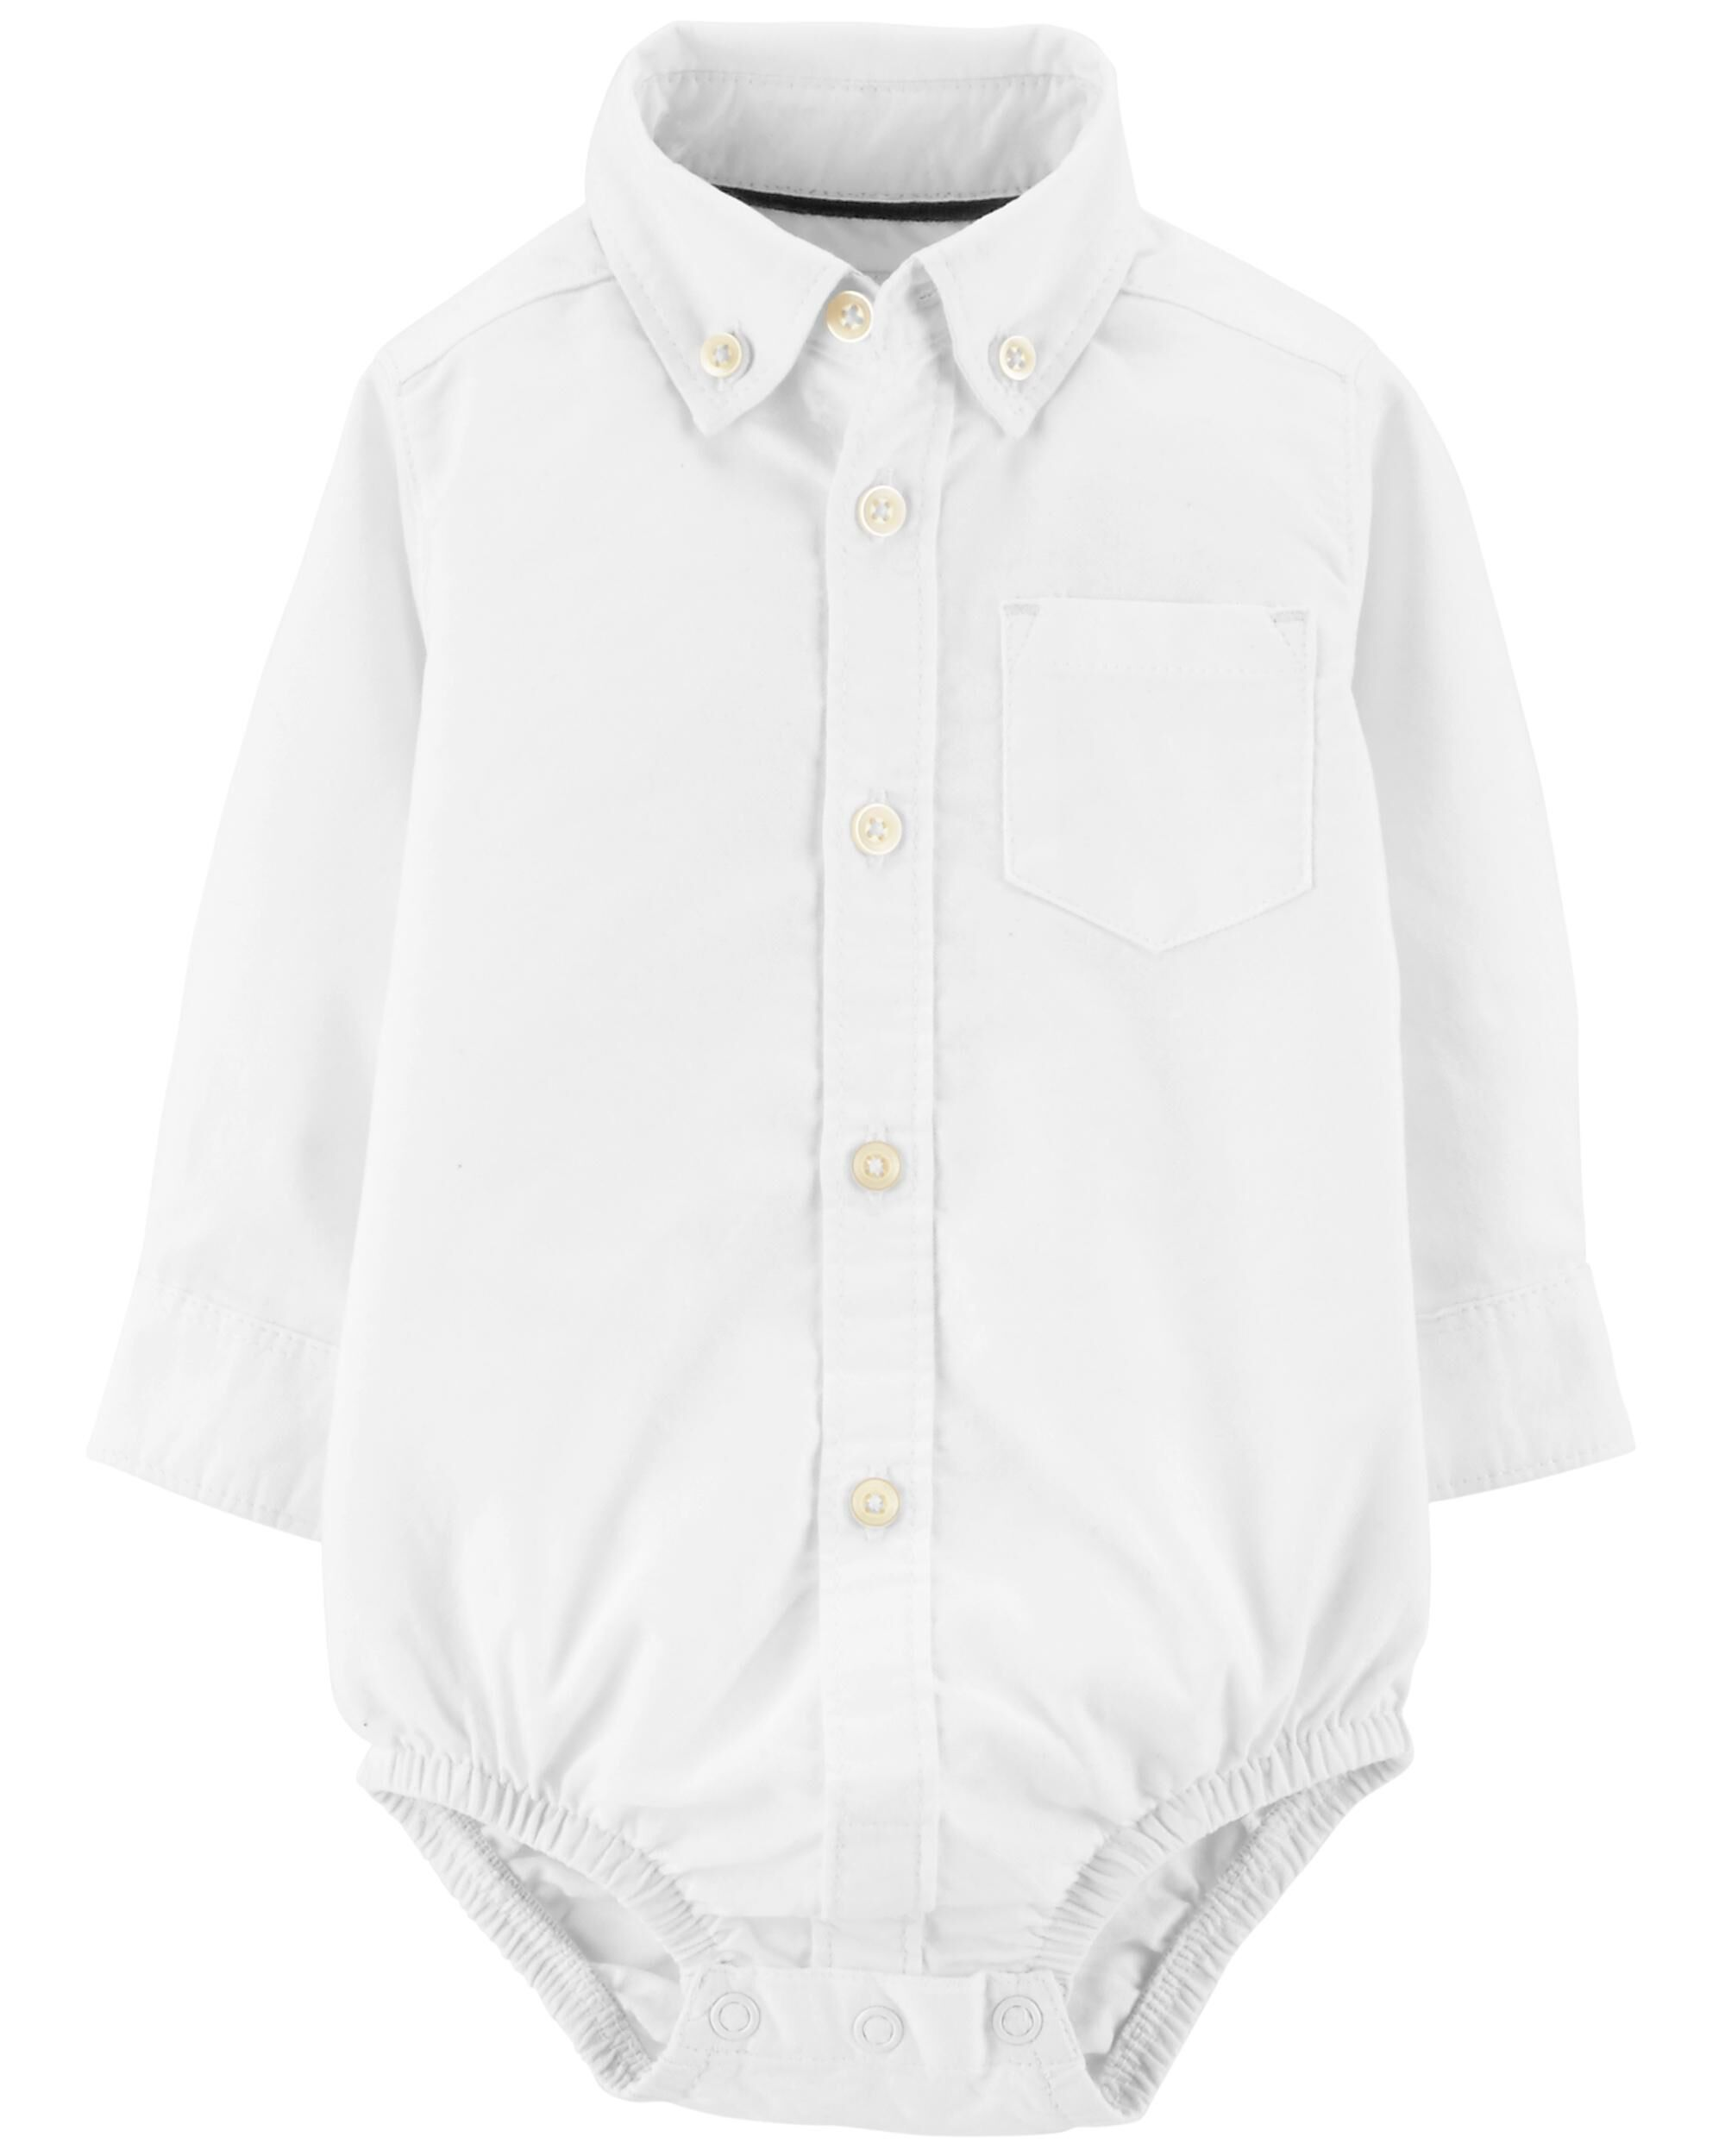 Button Front Uniform Bodysuit